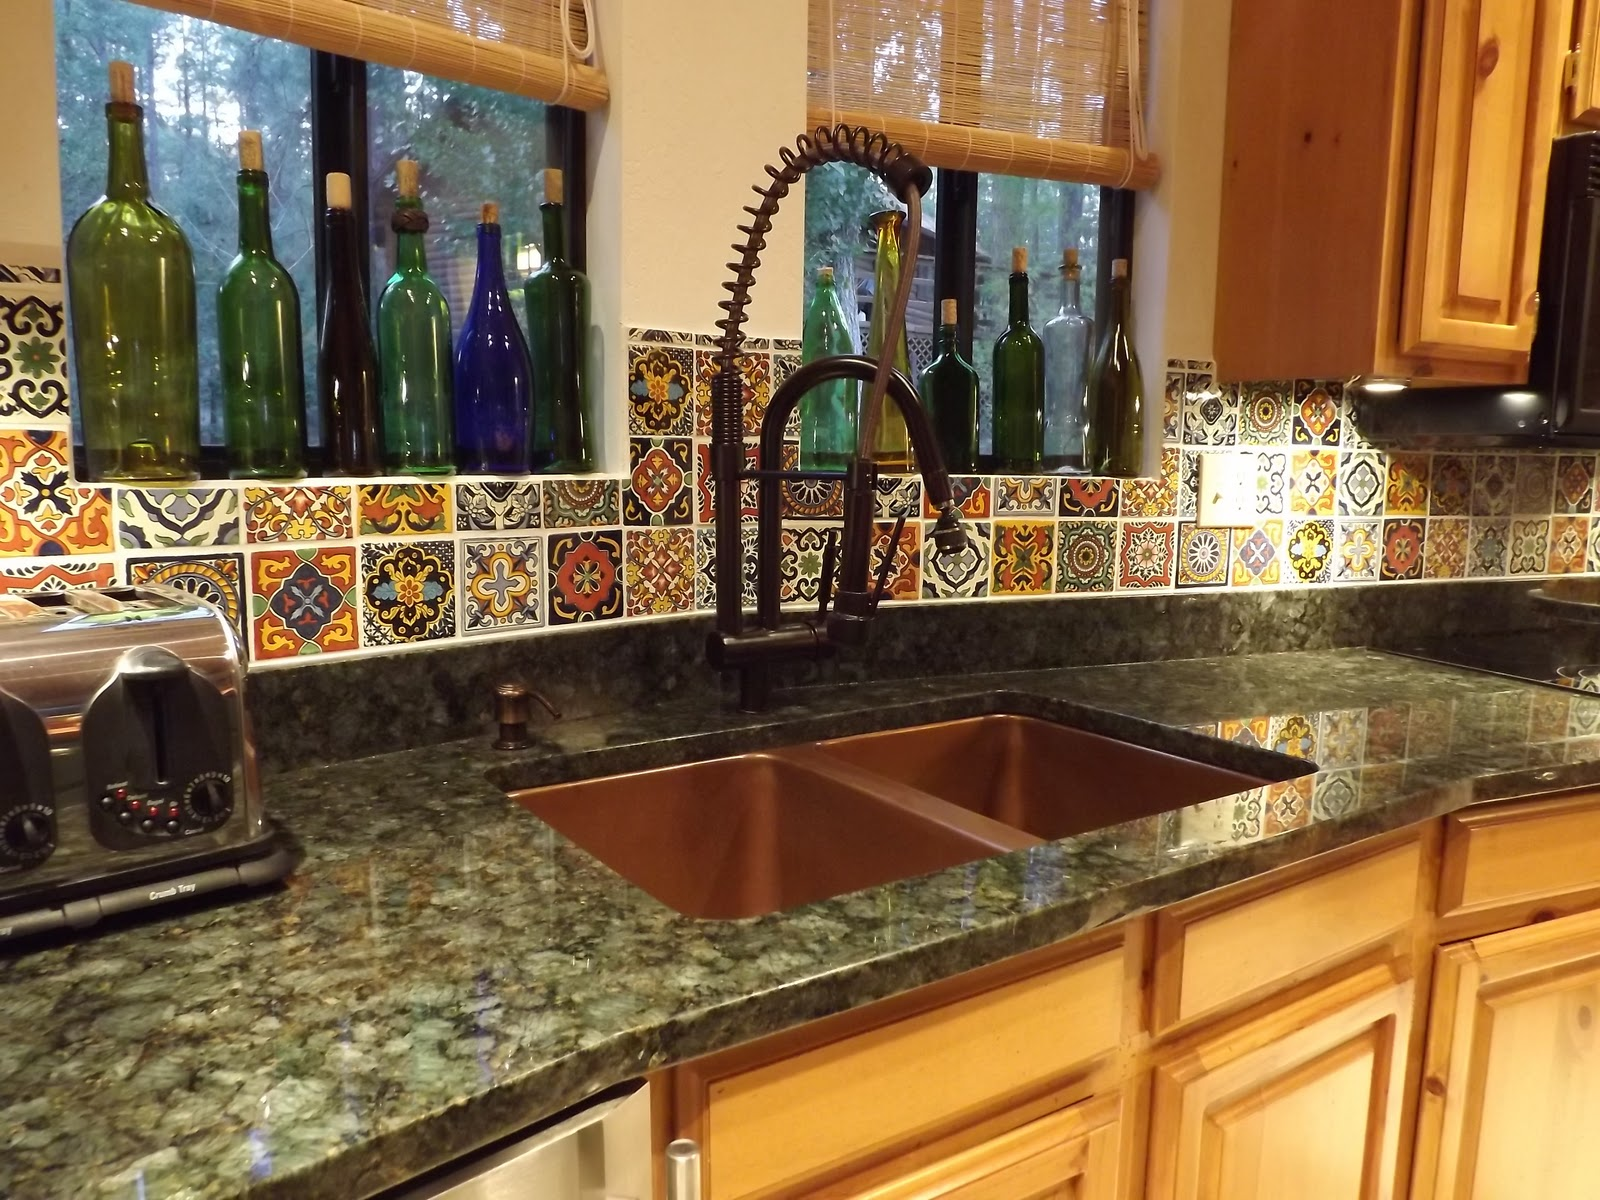 Mexican Backsplash Tiles Kitchen Boos Islands Dusty Coyote Tile Diy